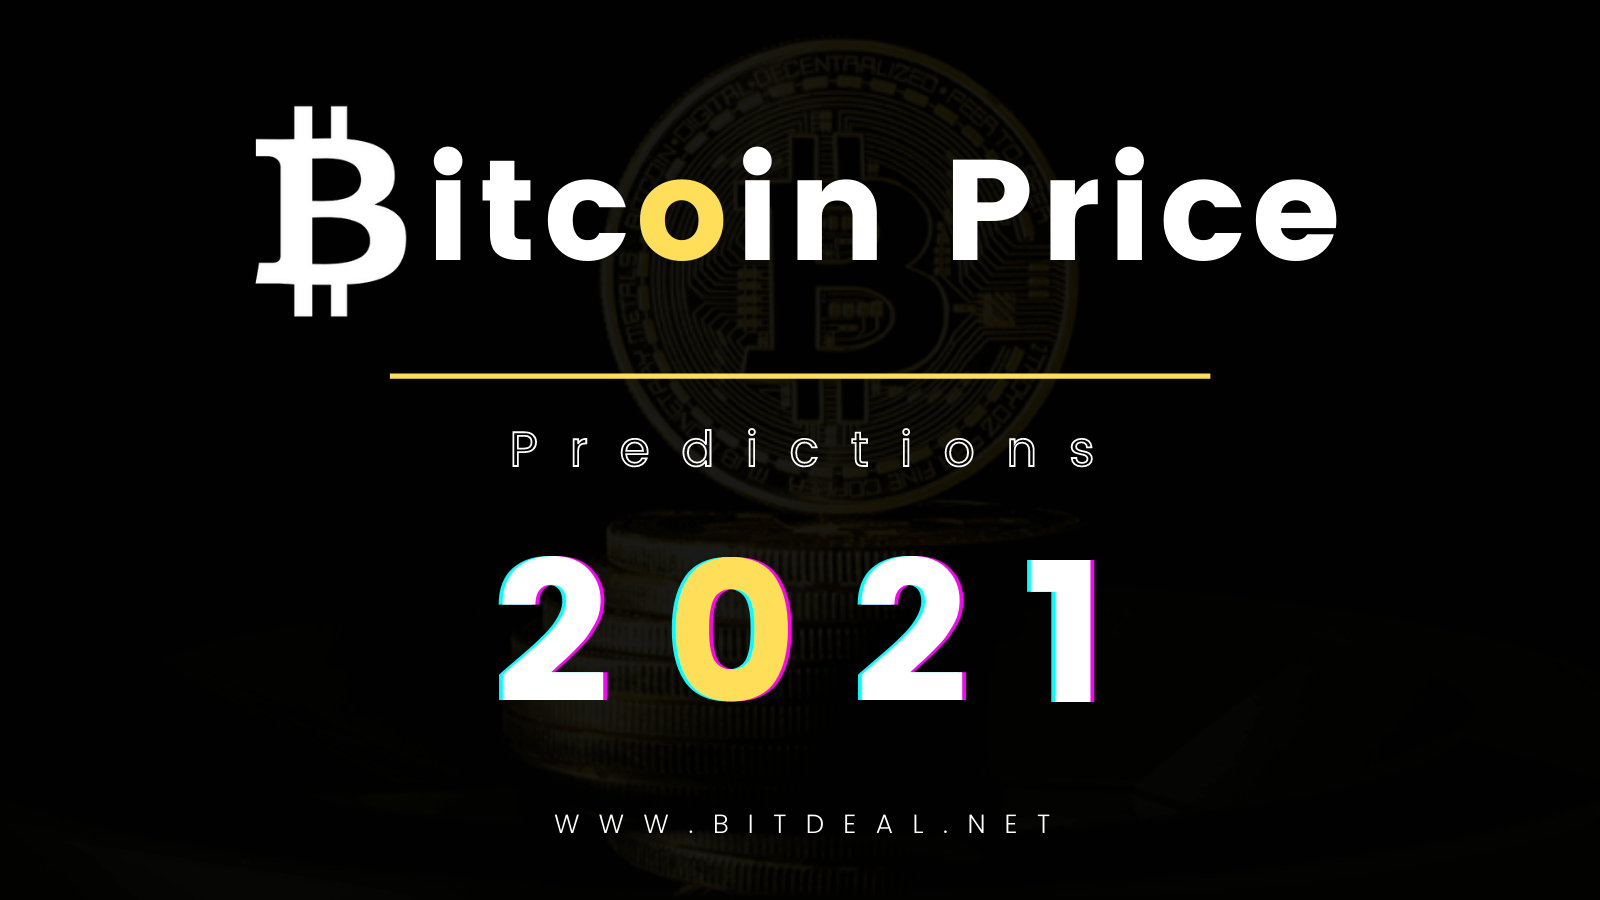 Bitcoin Price Predictions 2021 |  Bitcoin Price 2021